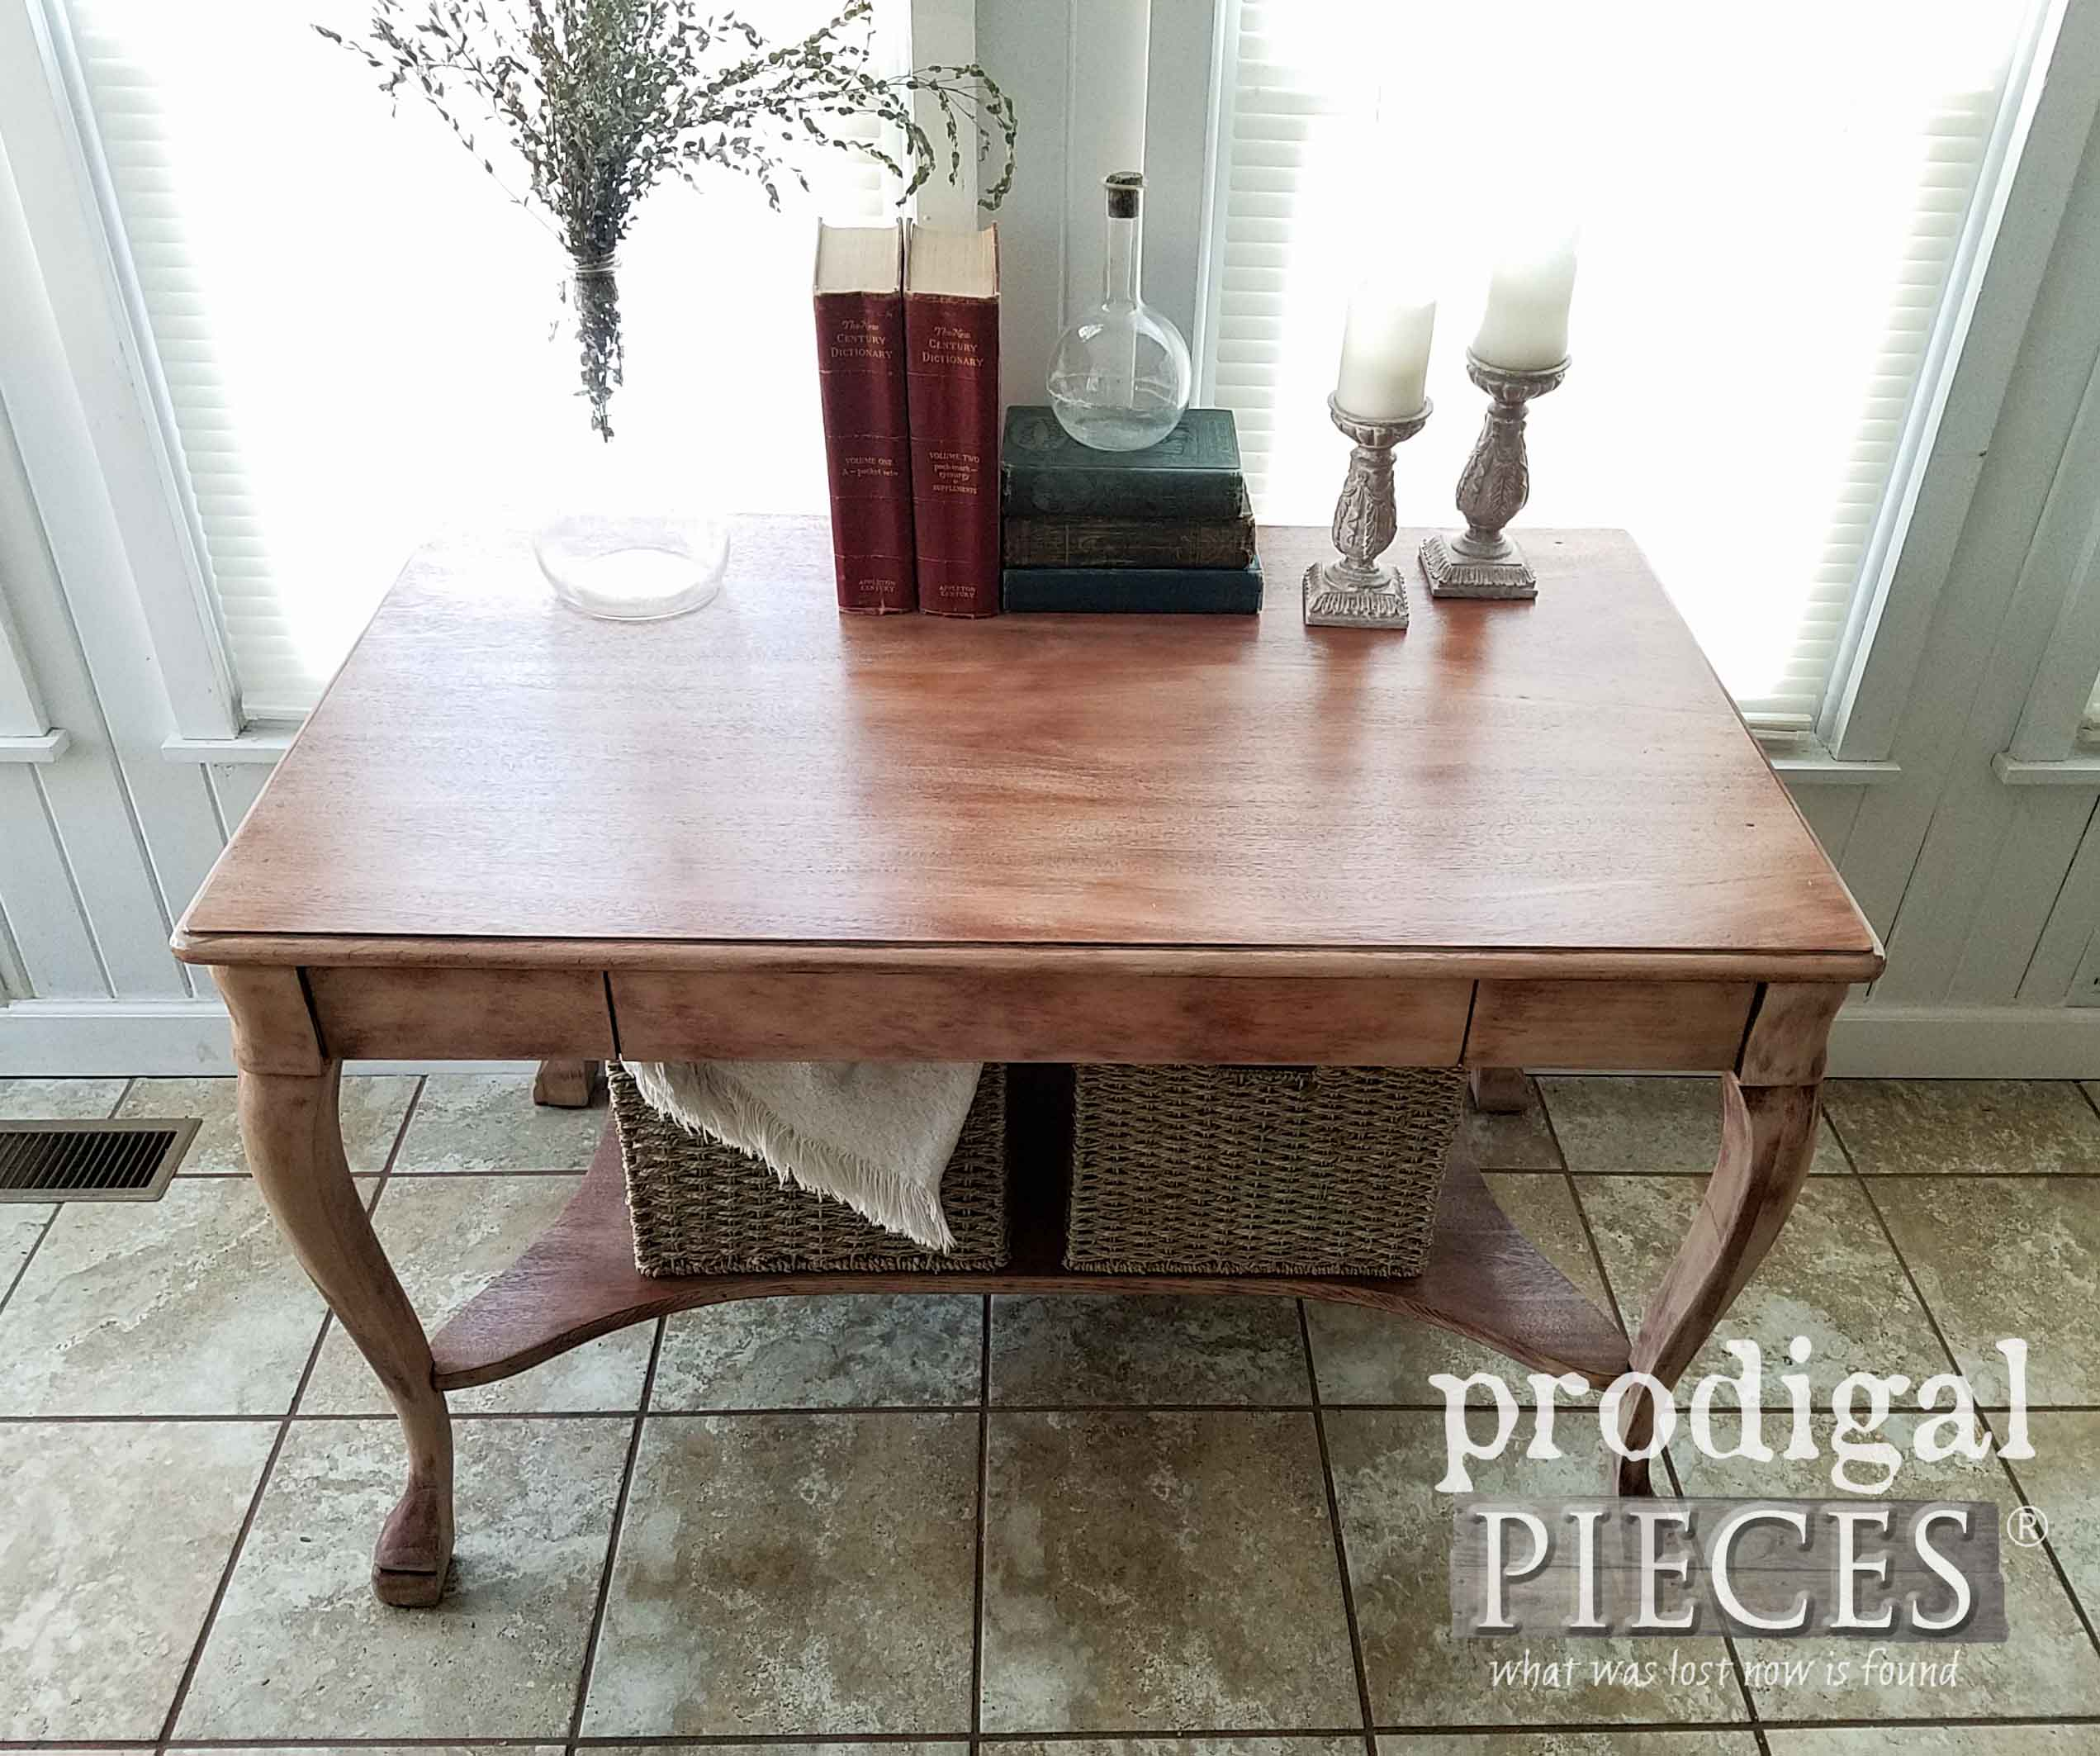 Antique Larkin Co. Library Table restored by Larissa of Prodigal Pieces | prodigalpieces.com